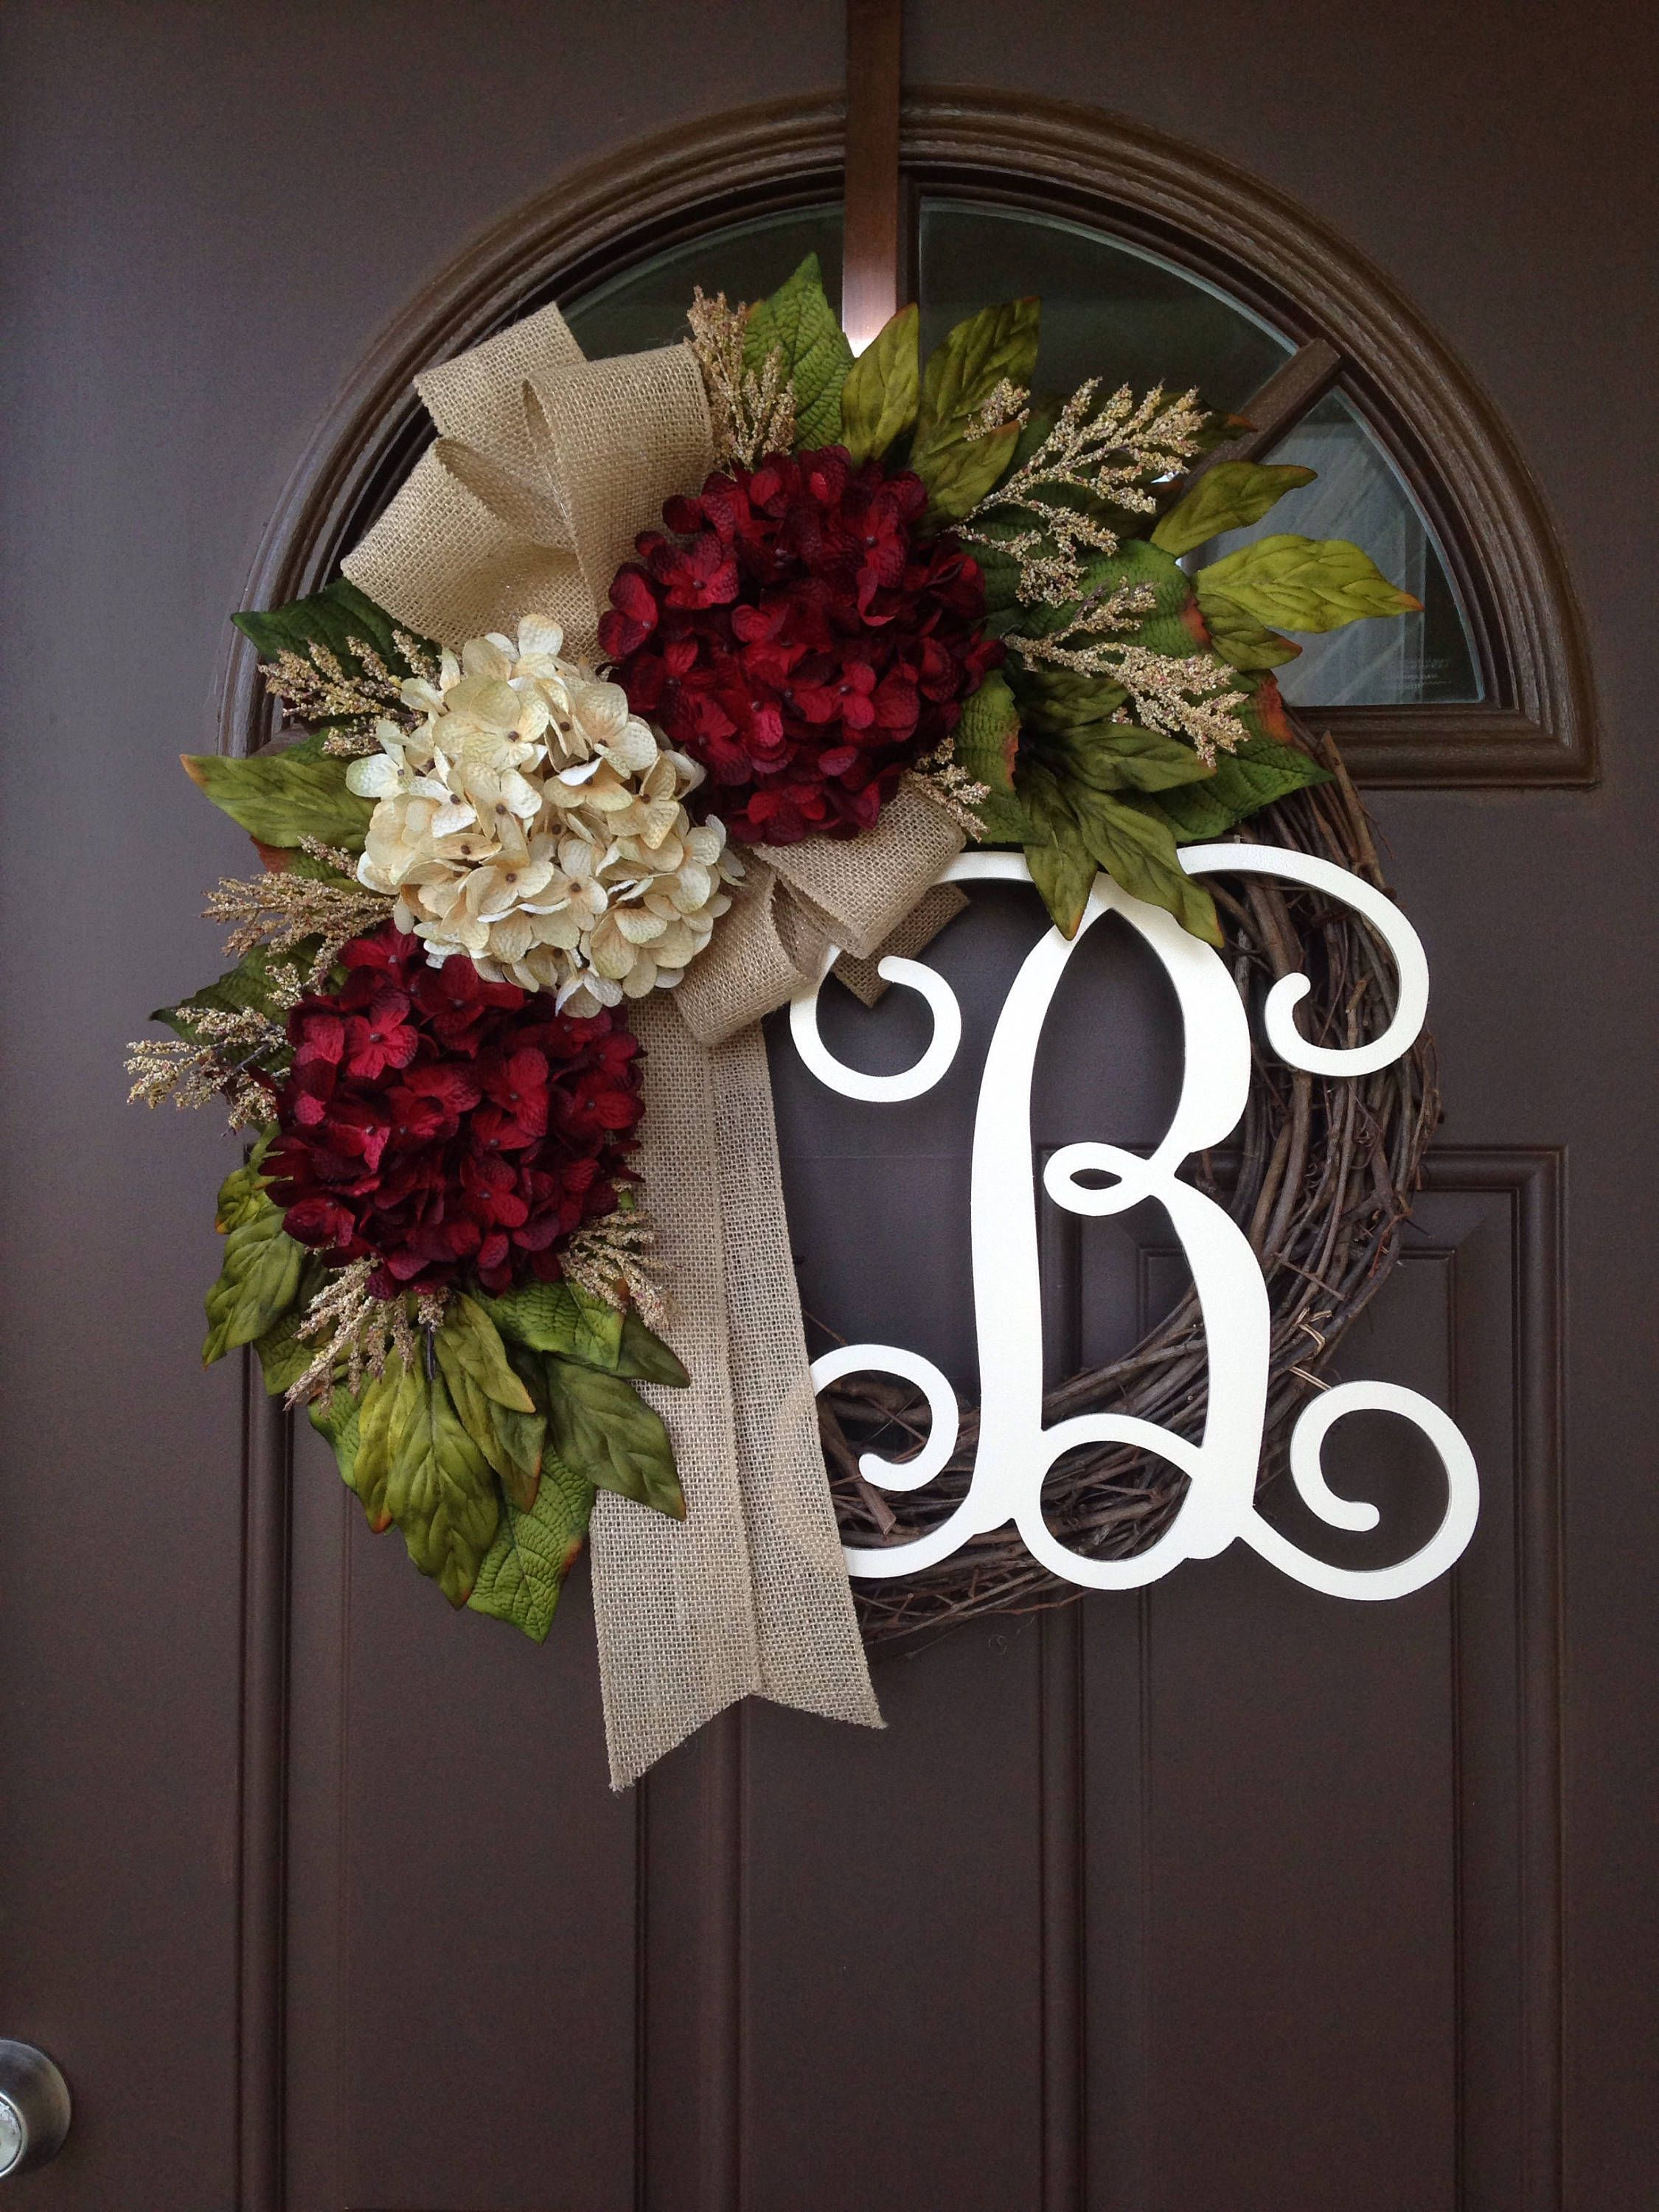 Front door decor for all seasons - All Season Wreath For Front Door Front Door Monogrammed Wreath Rustic Grapevine Wreath With Burlap Personalized Gifts Year Round Decor